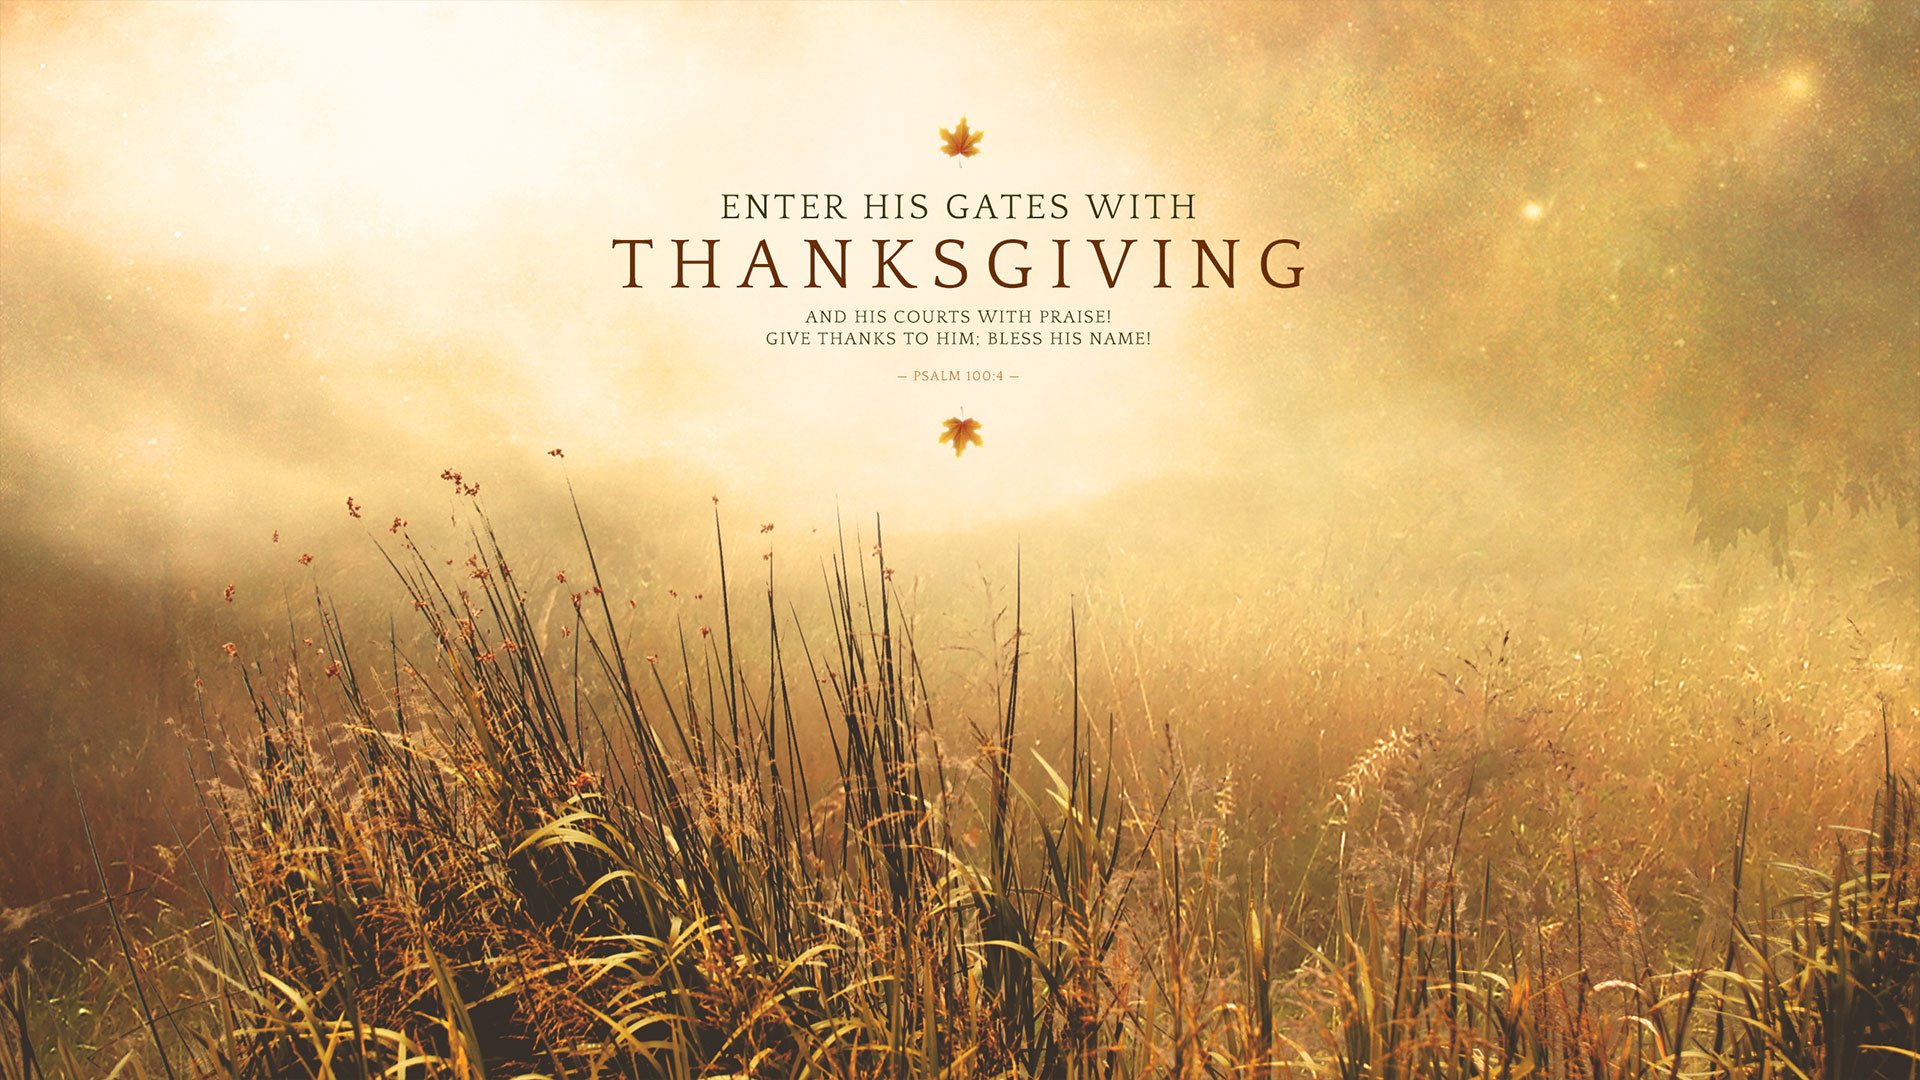 Res: 1920x1080, Images of Christian Thanksgiving HD, 0.45 Mb, Cornelius Arnot